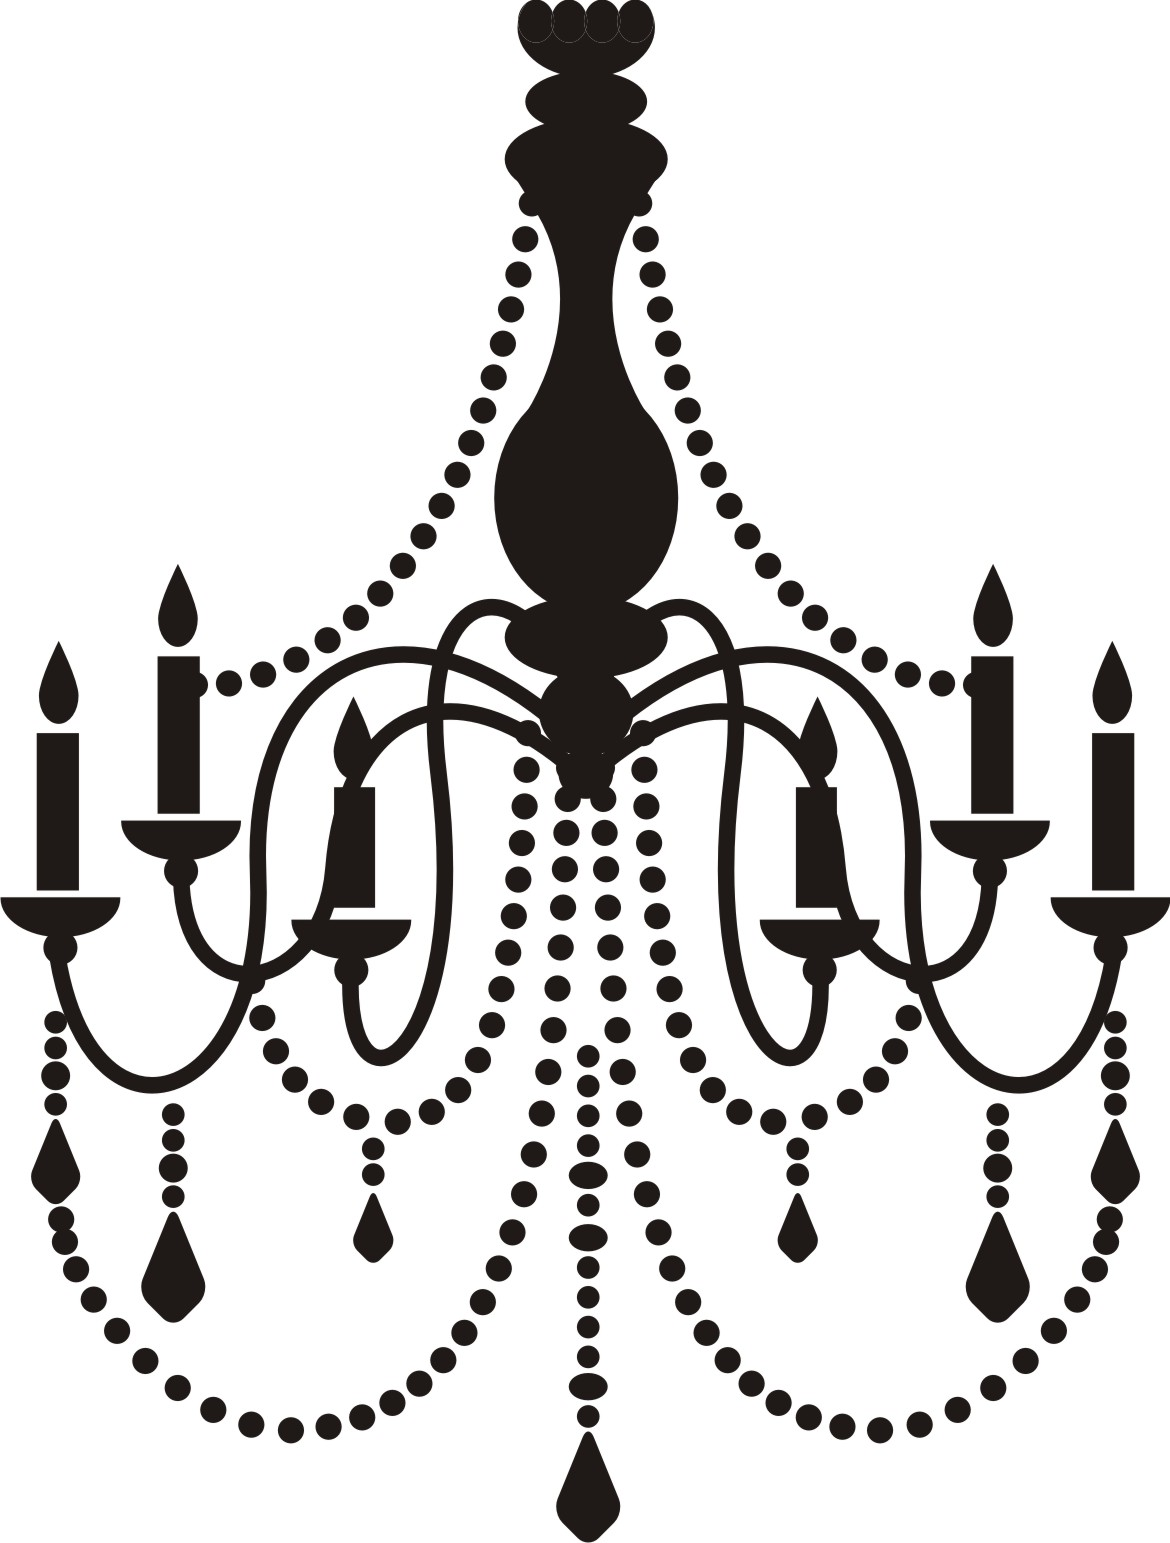 Clipart chandelier banner free download Free Chandelier Cliparts, Download Free Clip Art, Free Clip Art on ... banner free download